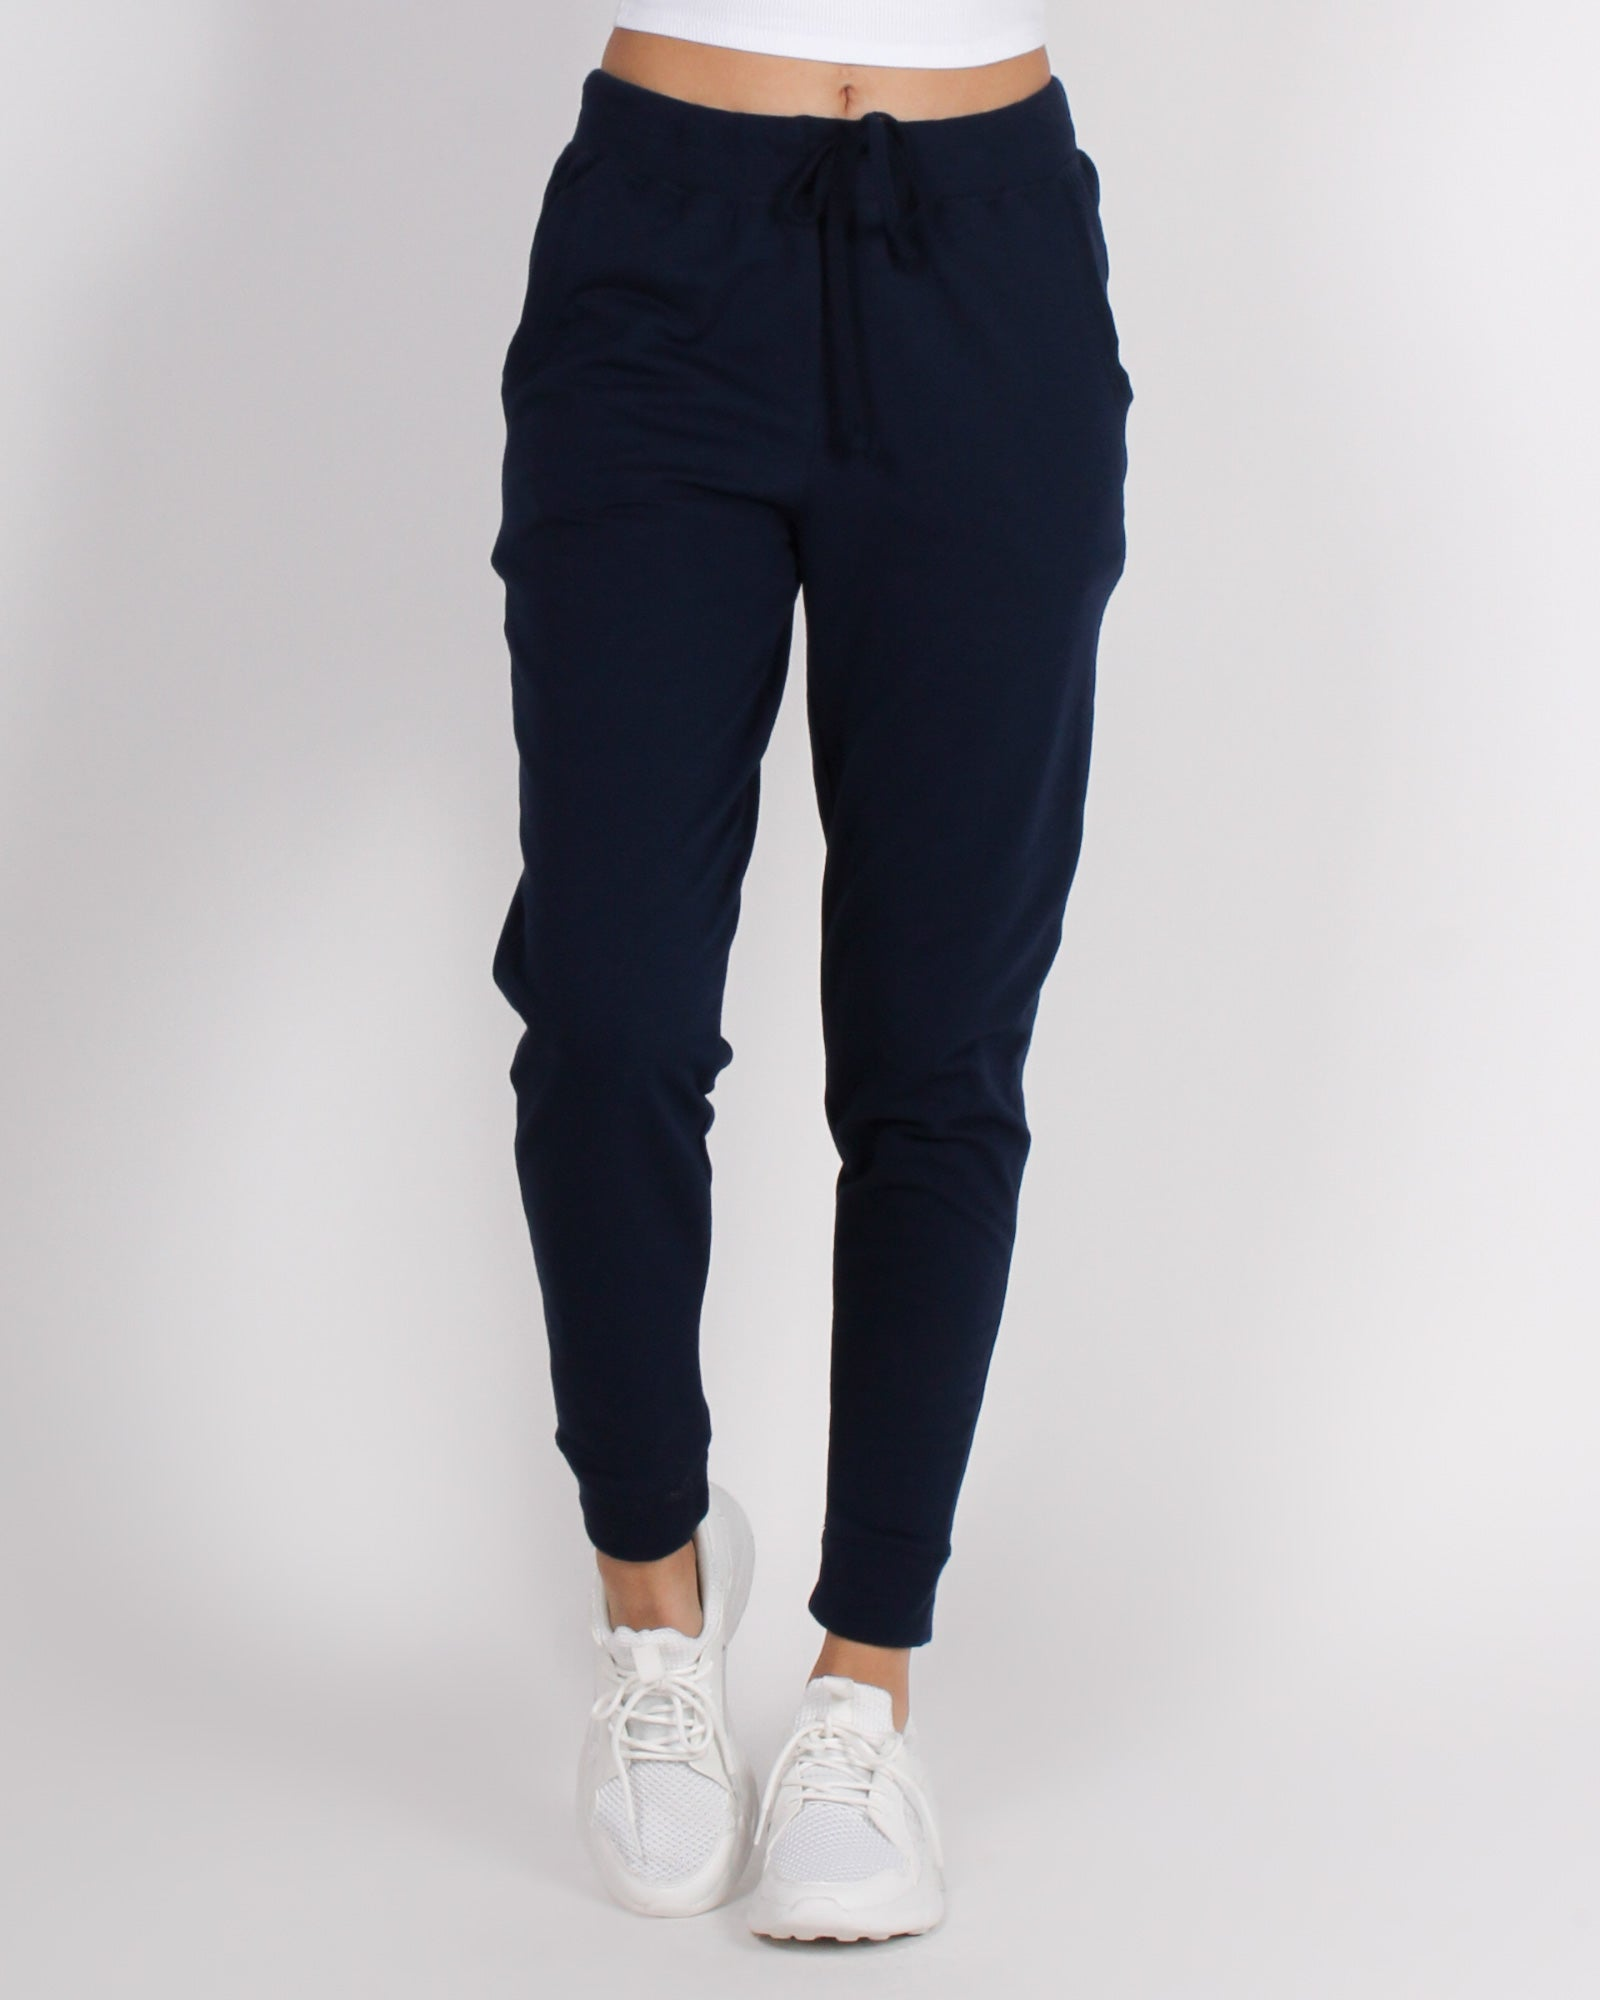 Fashion Q Shop Q Bombastic Love Jogger Pants (Navy) 65776